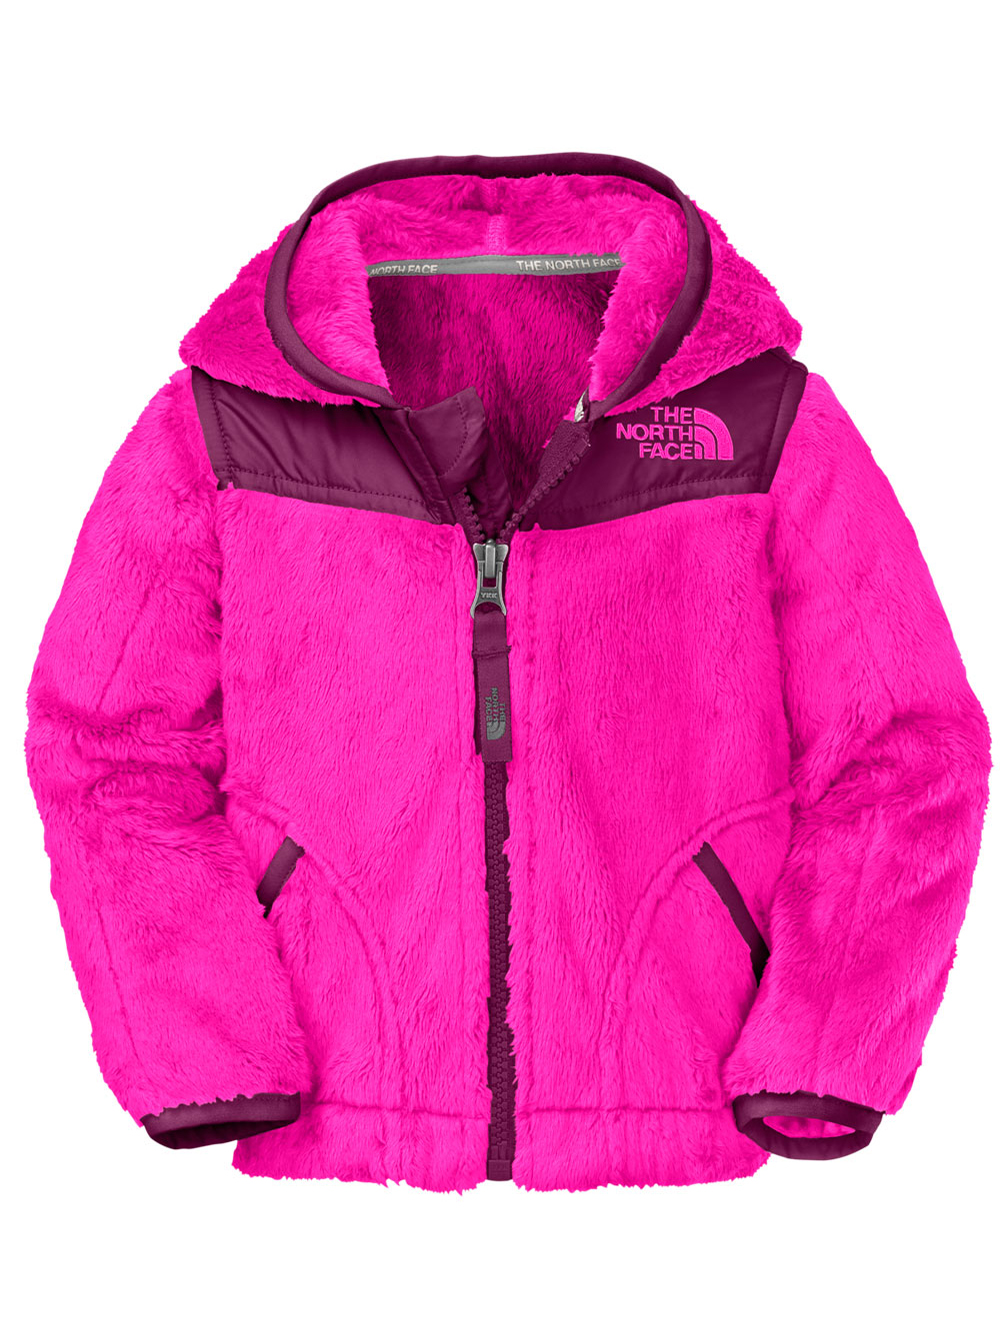 The North Face Baby Girls' Oso Hoodie